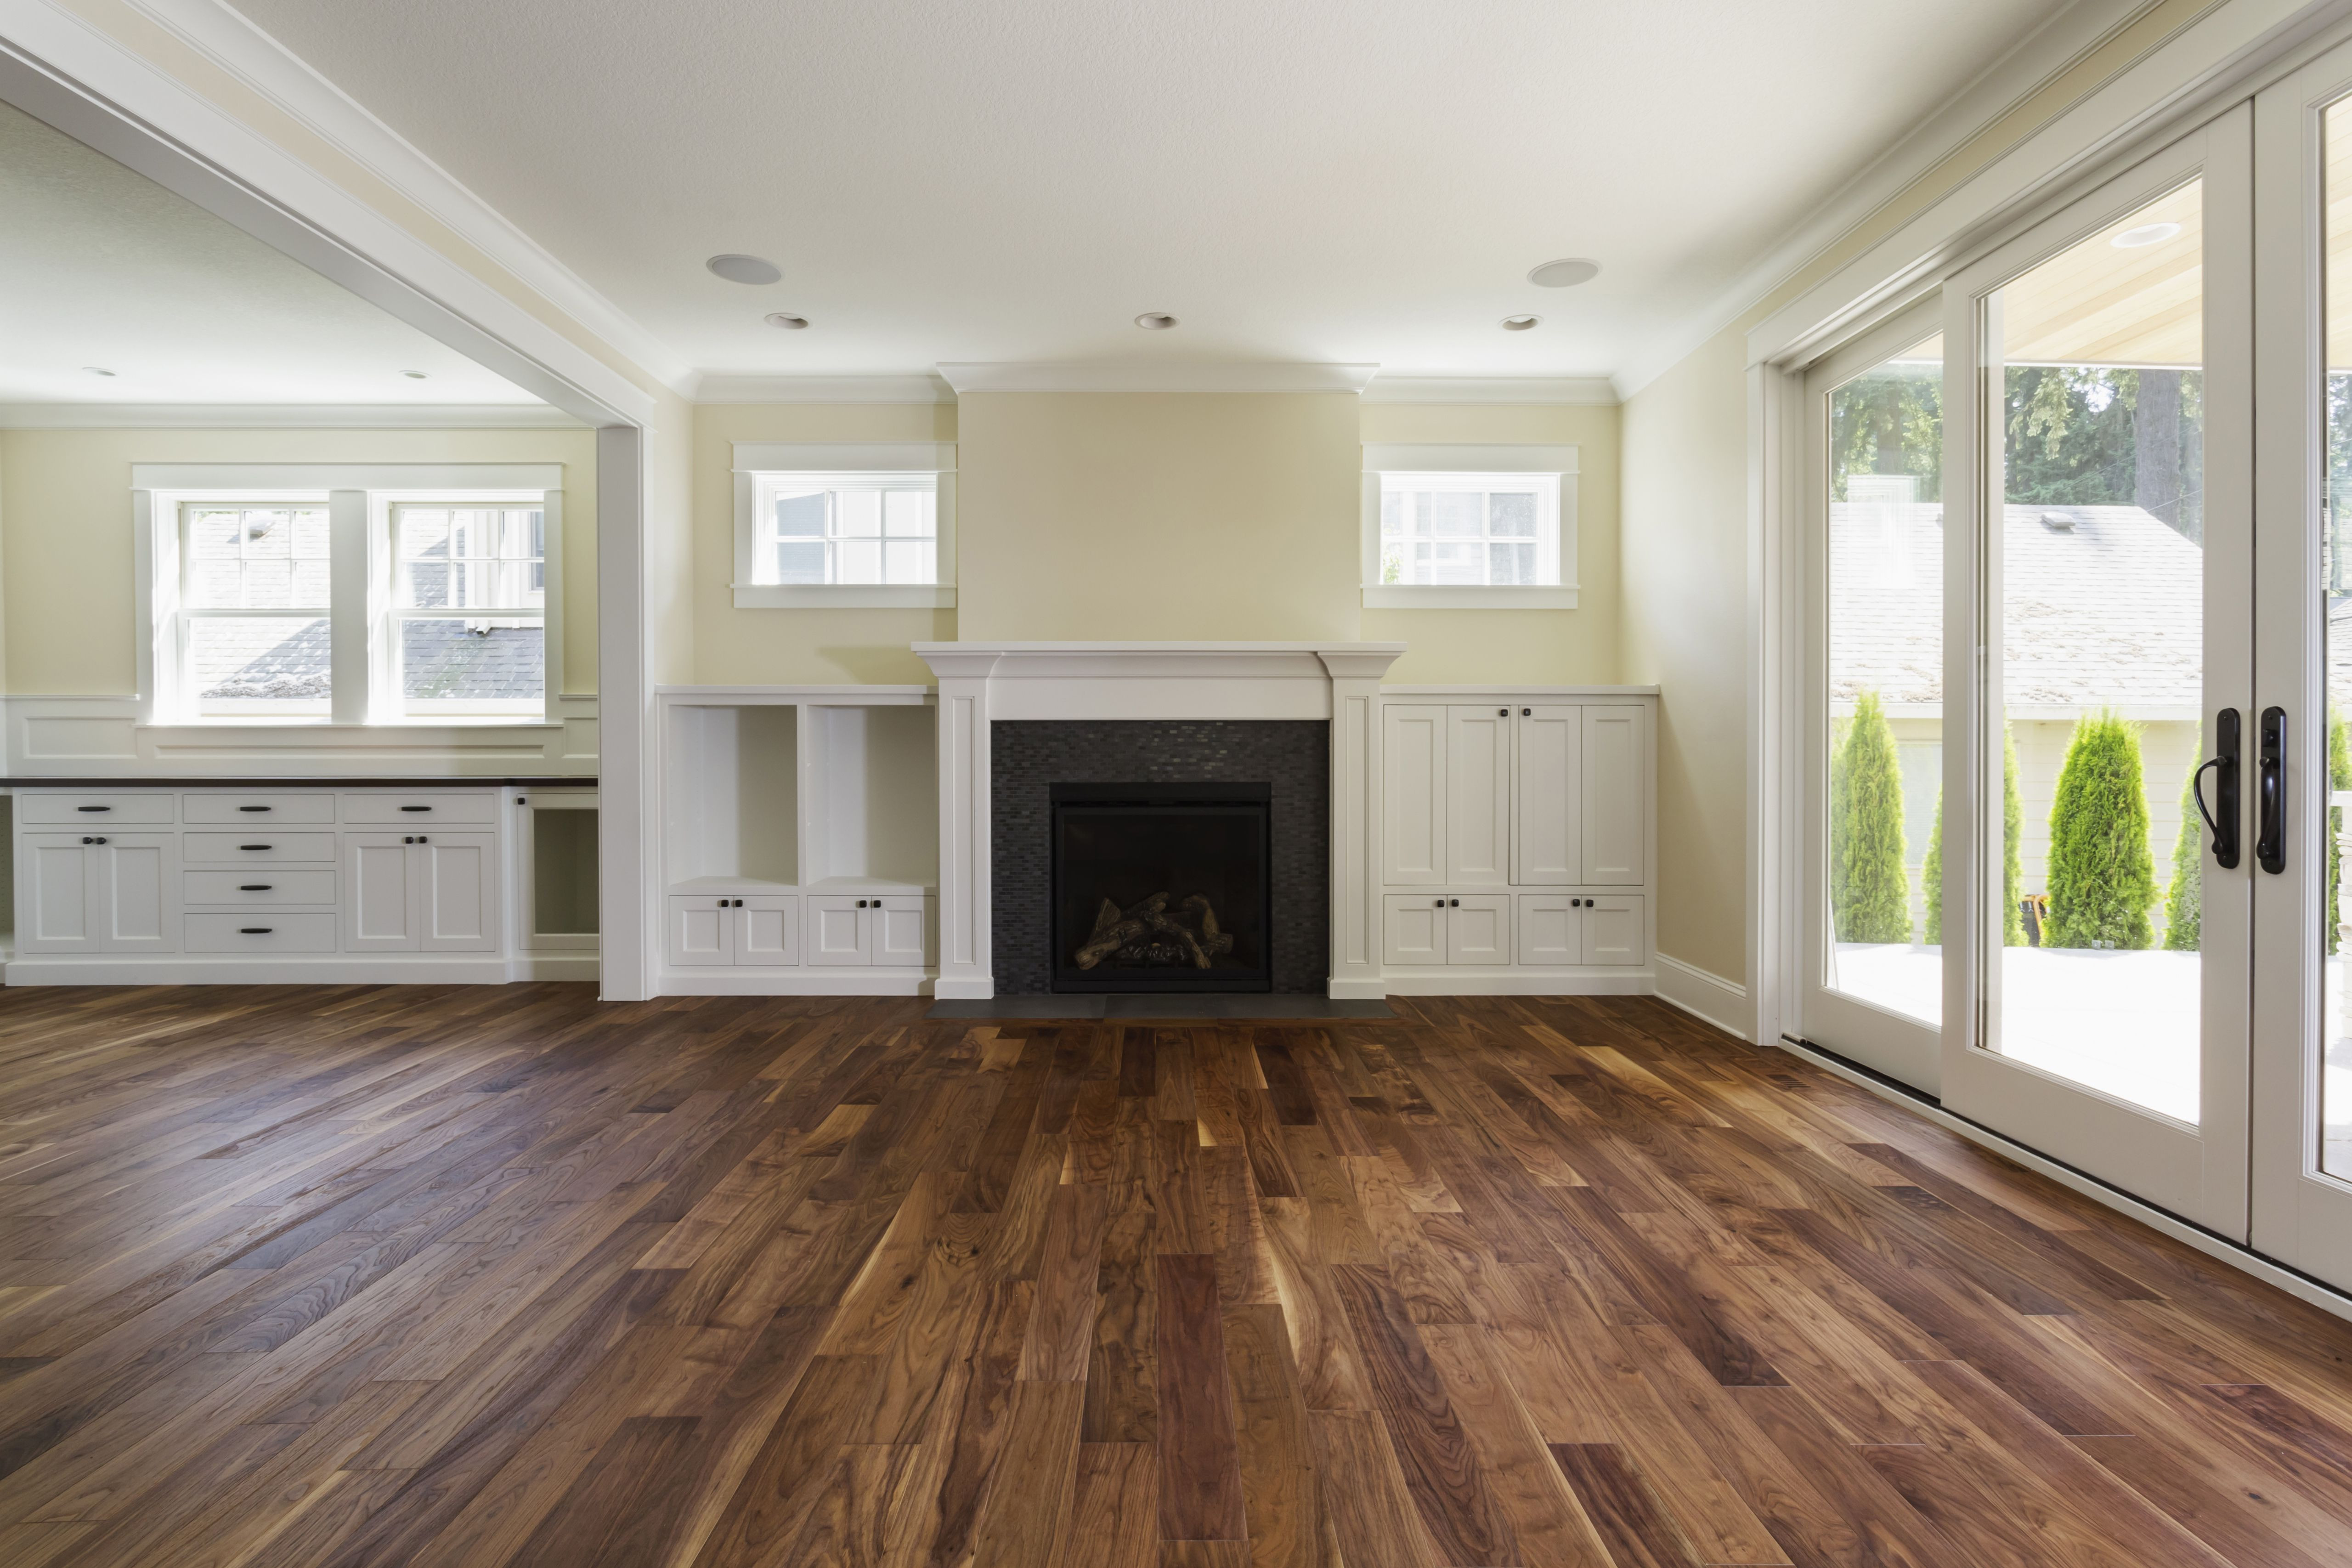 Best Waterproof Hardwood Flooring Of the Pros and Cons Of Prefinished Hardwood Flooring with Regard to Fireplace and Built In Shelves In Living Room 482143011 57bef8e33df78cc16e035397